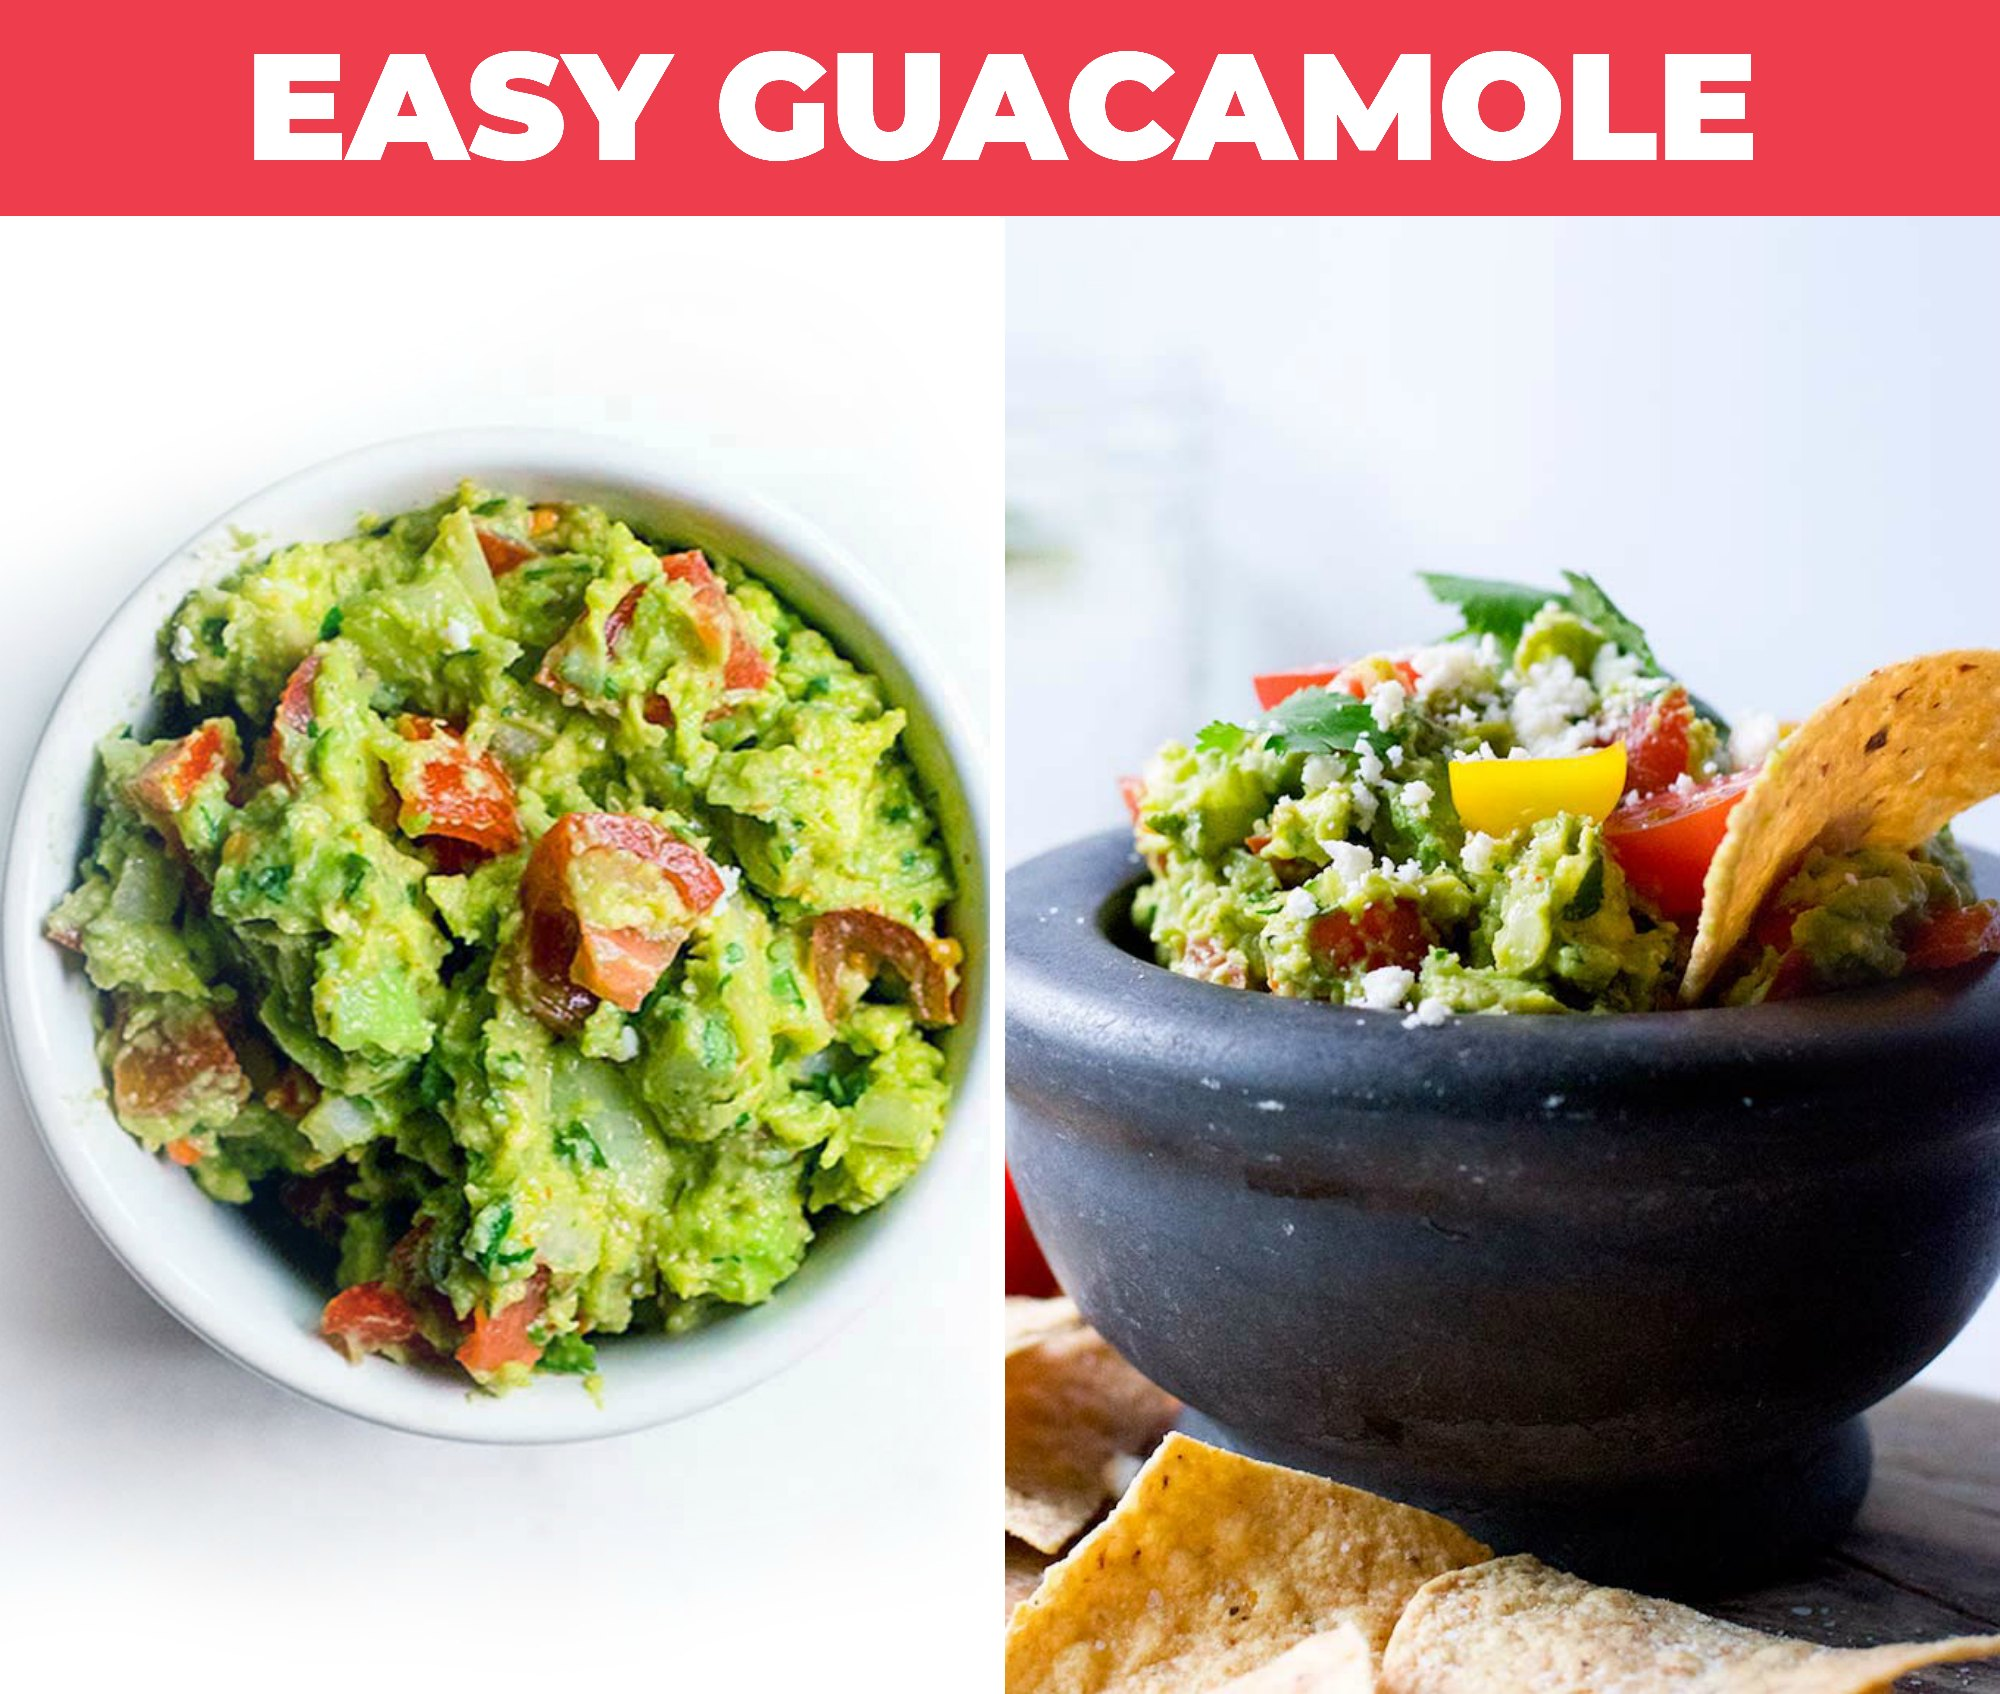 Image of guacamole in a small bowl